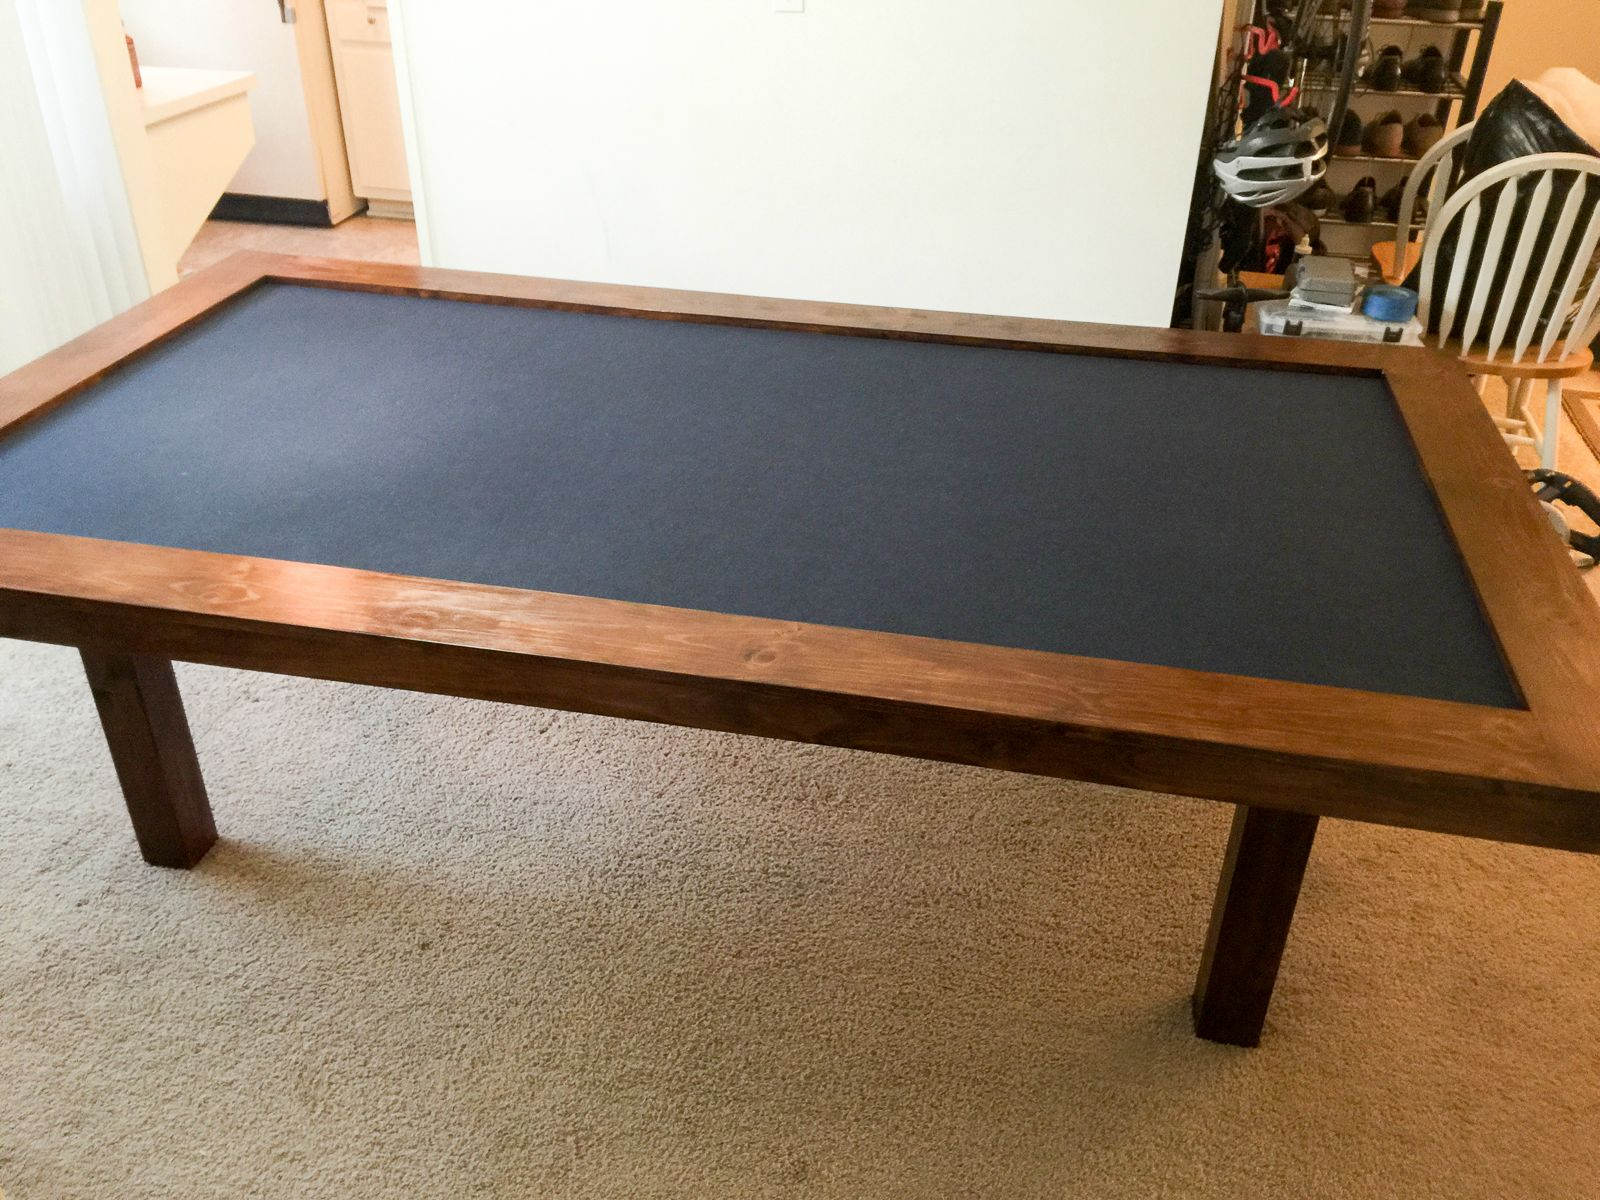 Sub-$400 Dining Room / Gaming Table — Board Games Enhanced